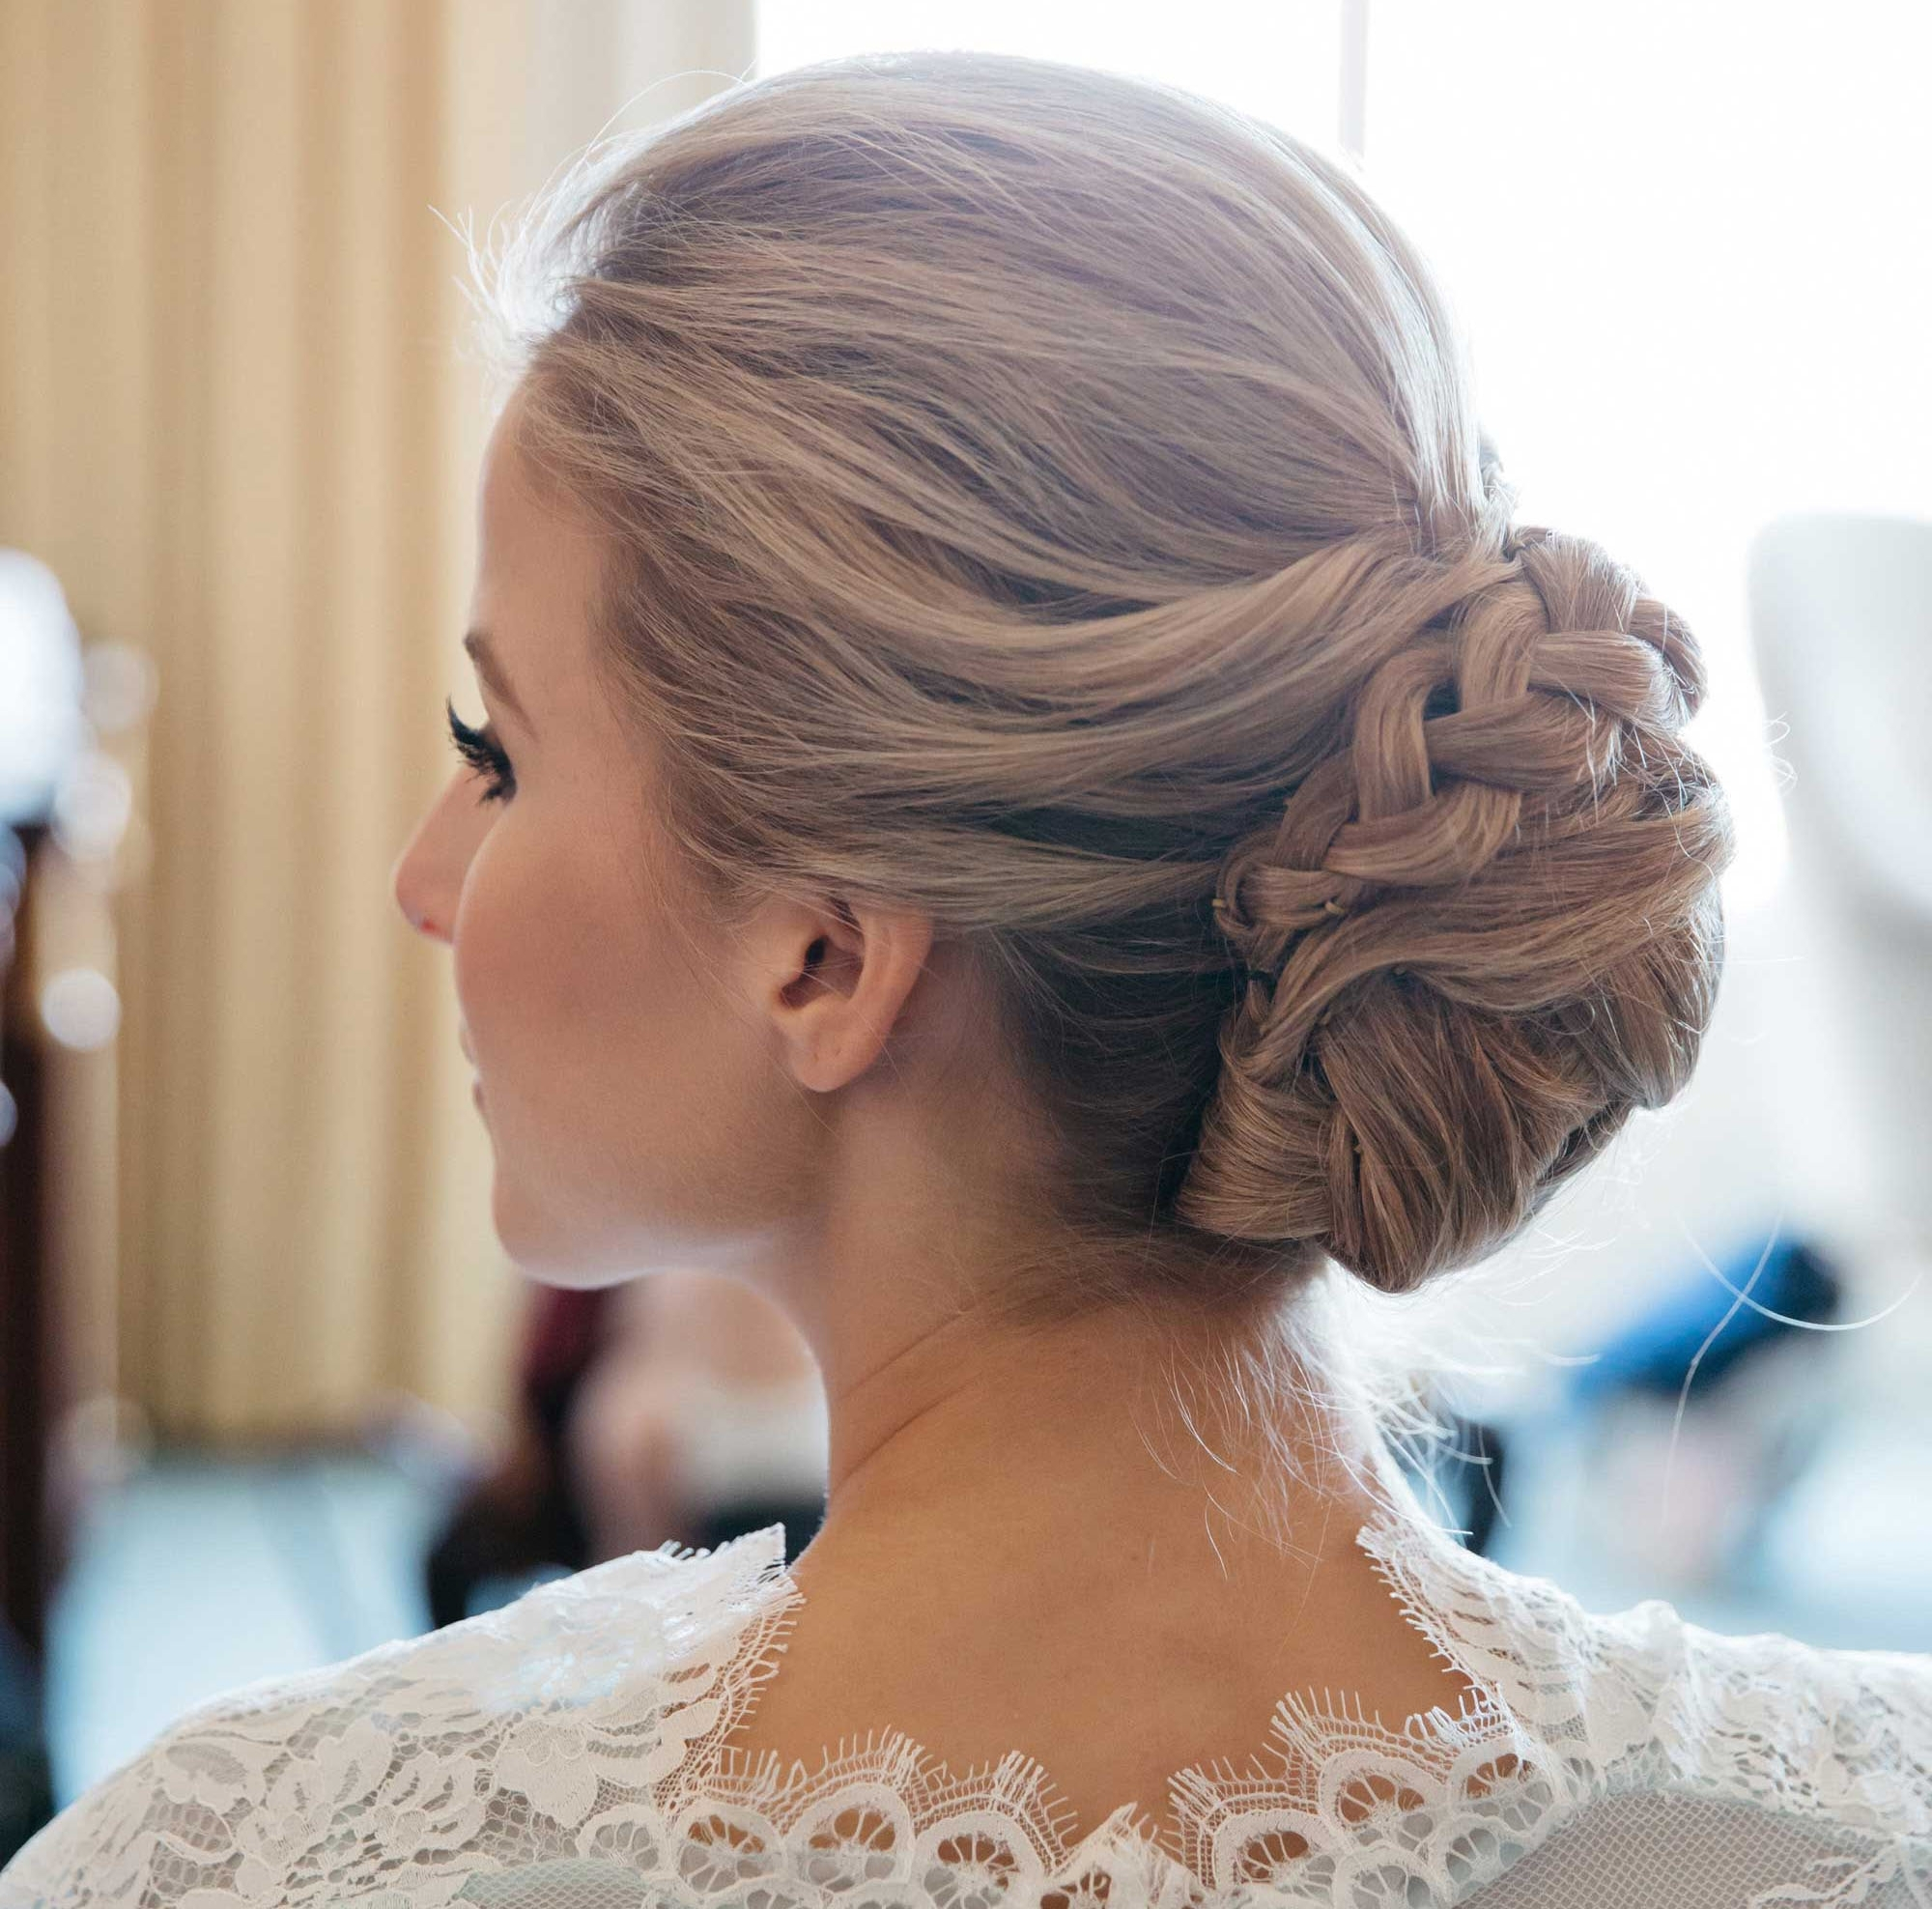 Latest Chignon Wedding Hairstyles Regarding Braided Hairstyles: 5 Ideas For Your Wedding Look – Inside Weddings (View 9 of 15)